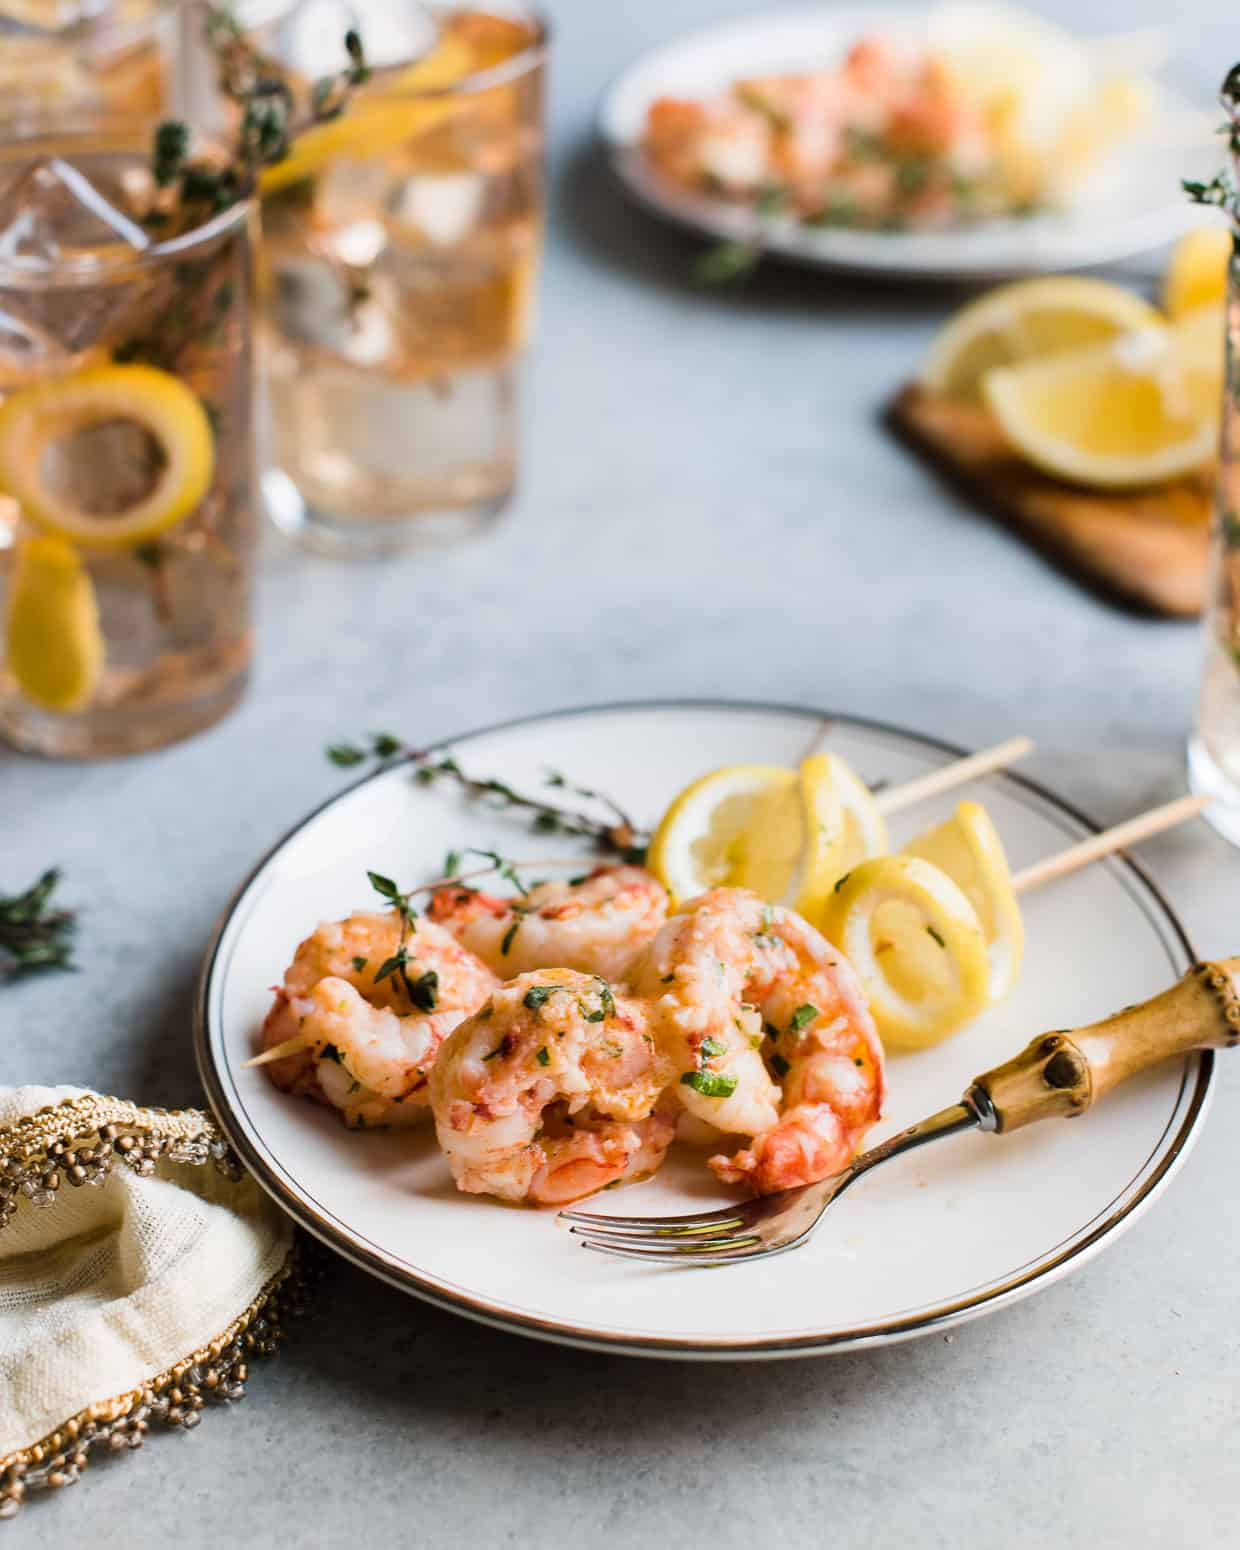 Ginger Lemon Shrimp - whether you serve it as an appetizer or as part of a meal, you'll love how quickly this cooks in no time!